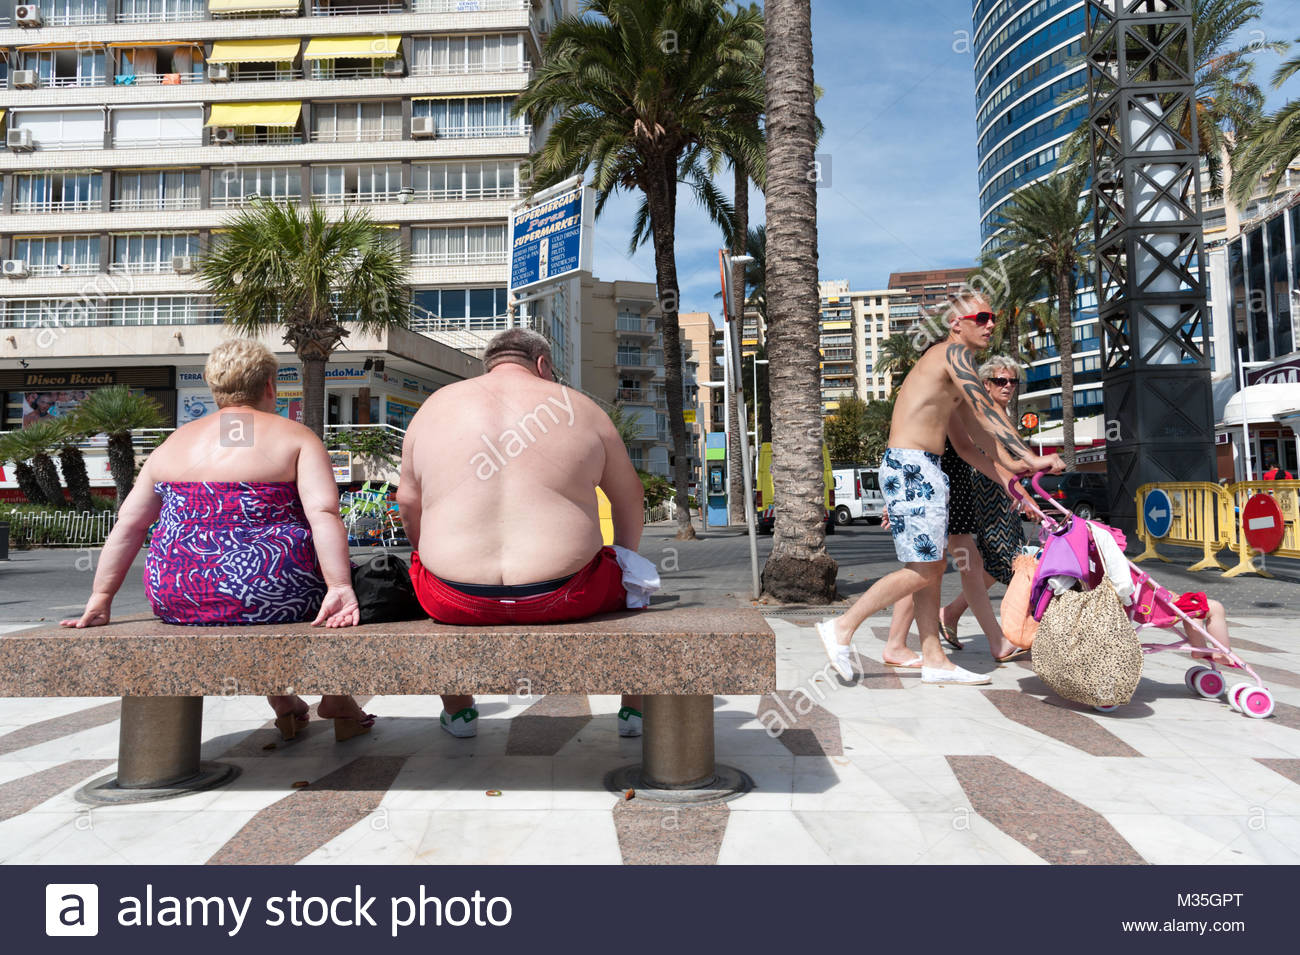 holidays abroad There's more to booking a cheap holiday than 'get it late'  up if all-inclusive is  worth it, plus gives haggling tips to help negotiate the cost down even further  if  you're abroad, and you're covered if you don't get the holiday you paid for, eg,.